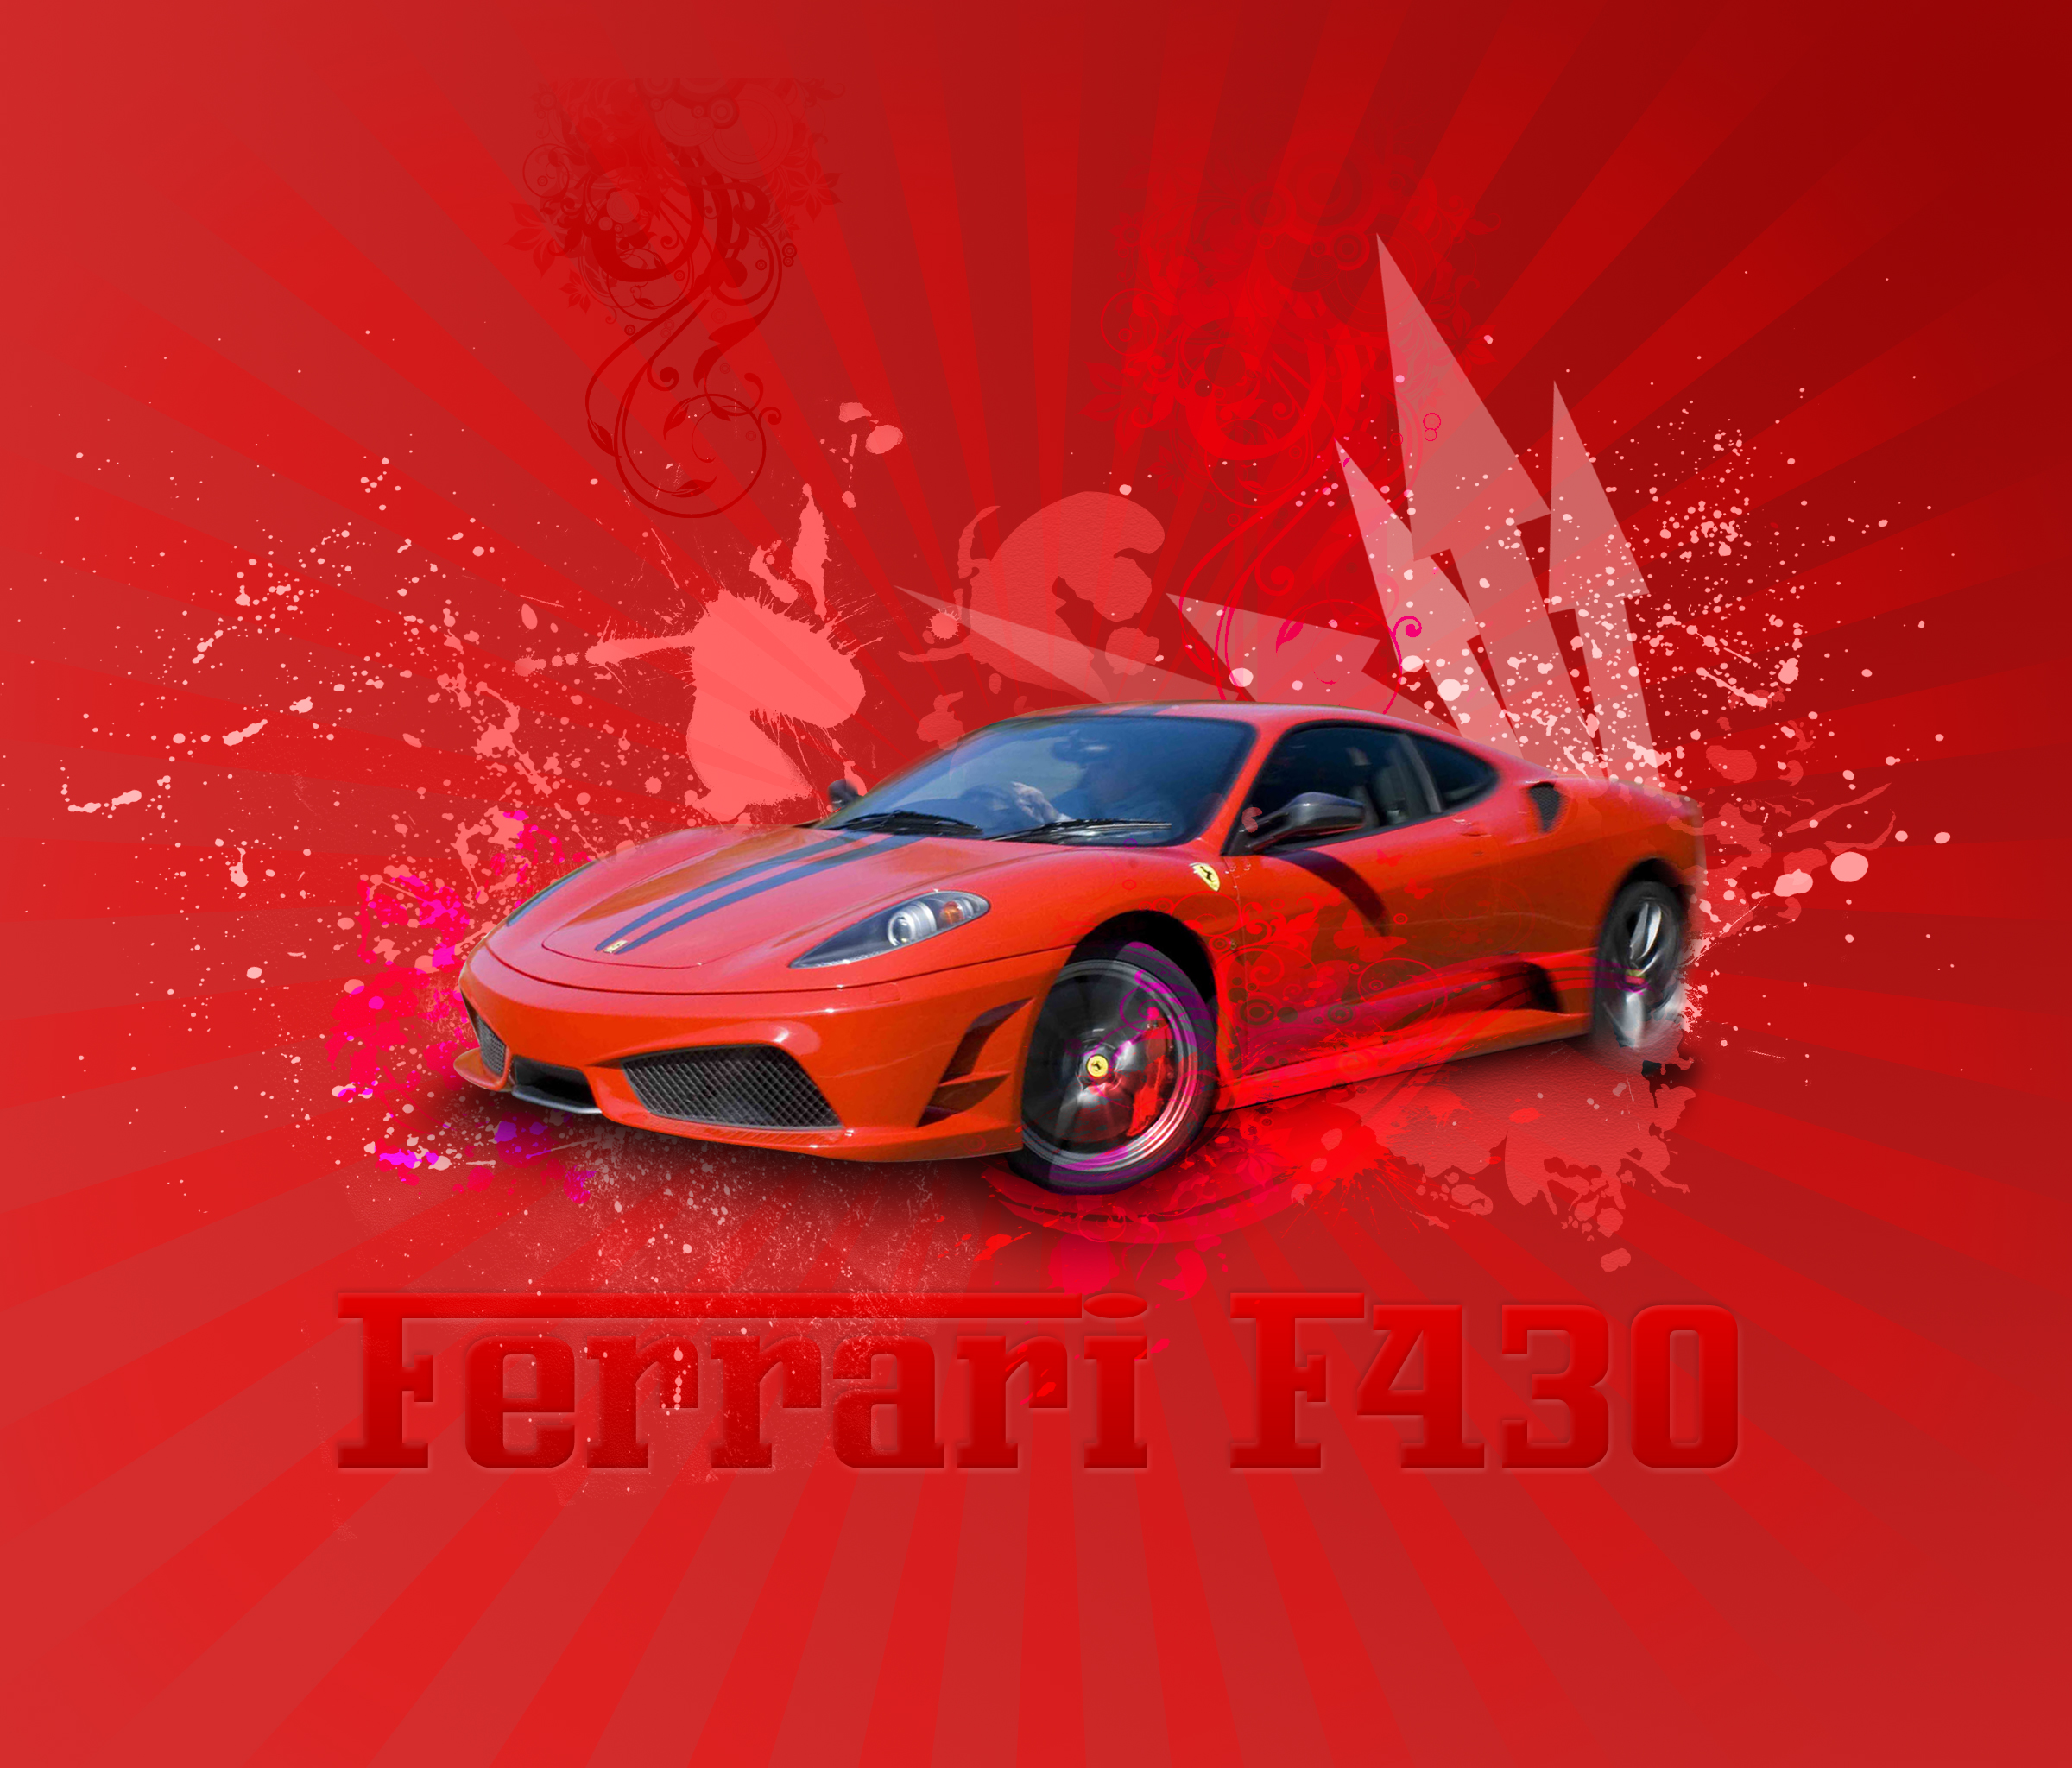 Ferrari F430 Wallpaper By MitakoBG On DeviantArt